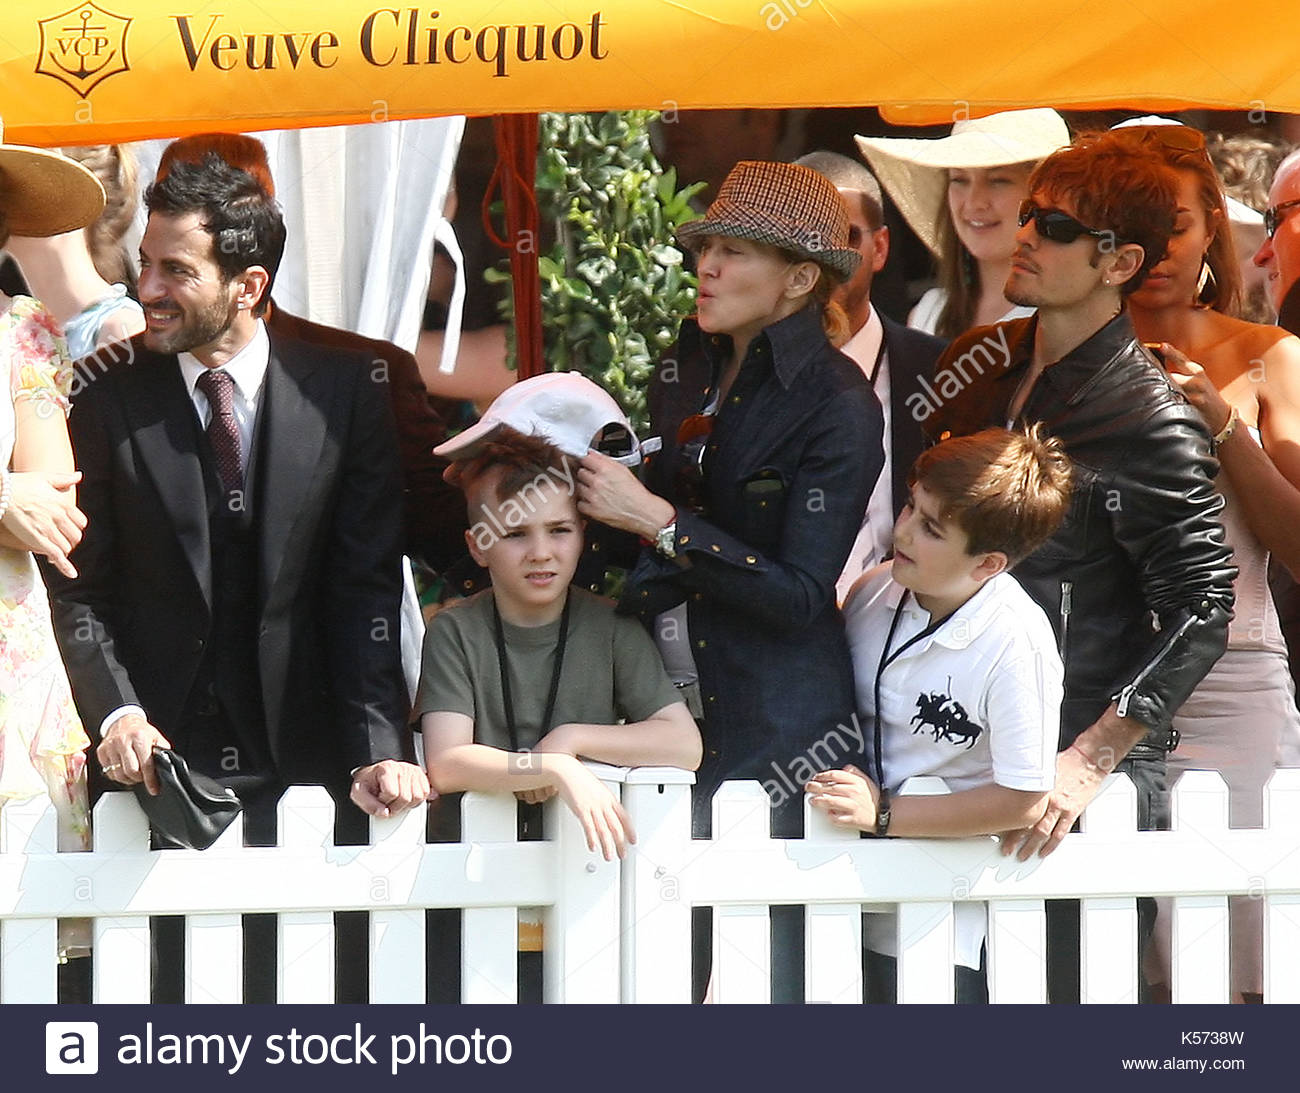 aa22c70d76e73 Marc Jacobs, Madonna, Rocco, Steven Klein and David Banda. Madonna takes  Jesus, David Banda, and Rocco to the 2nd Annual Veuve Clicquot Manhattan  Polo ...